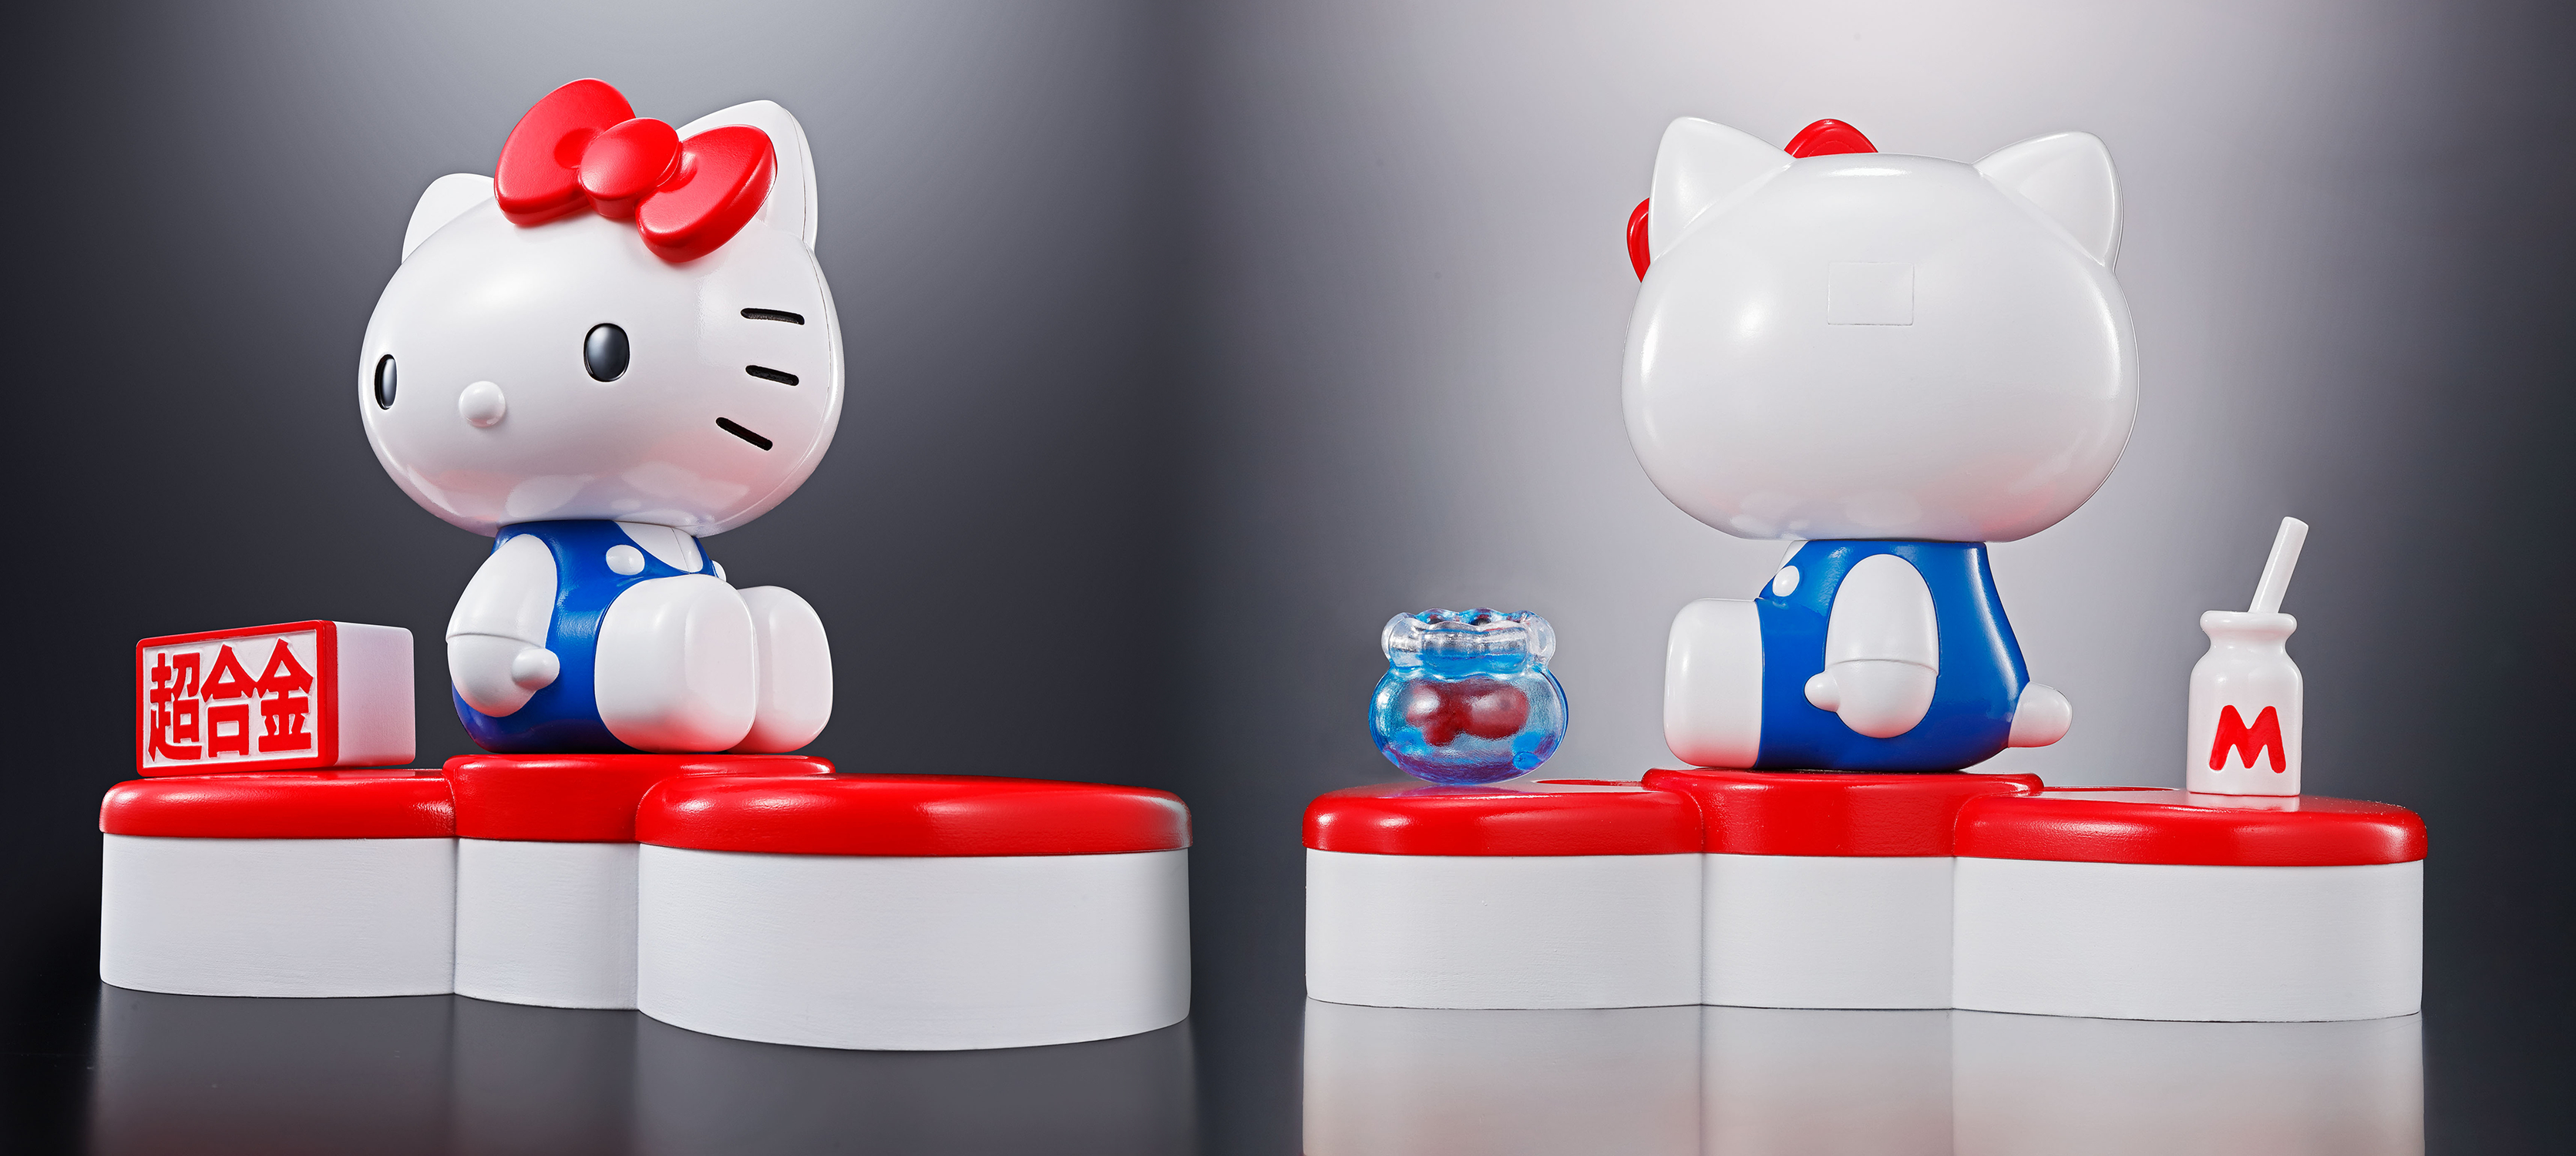 HELLO KITTY CHOGOKIN 45TH ANNIVERSARY HELLO KITTY FIG